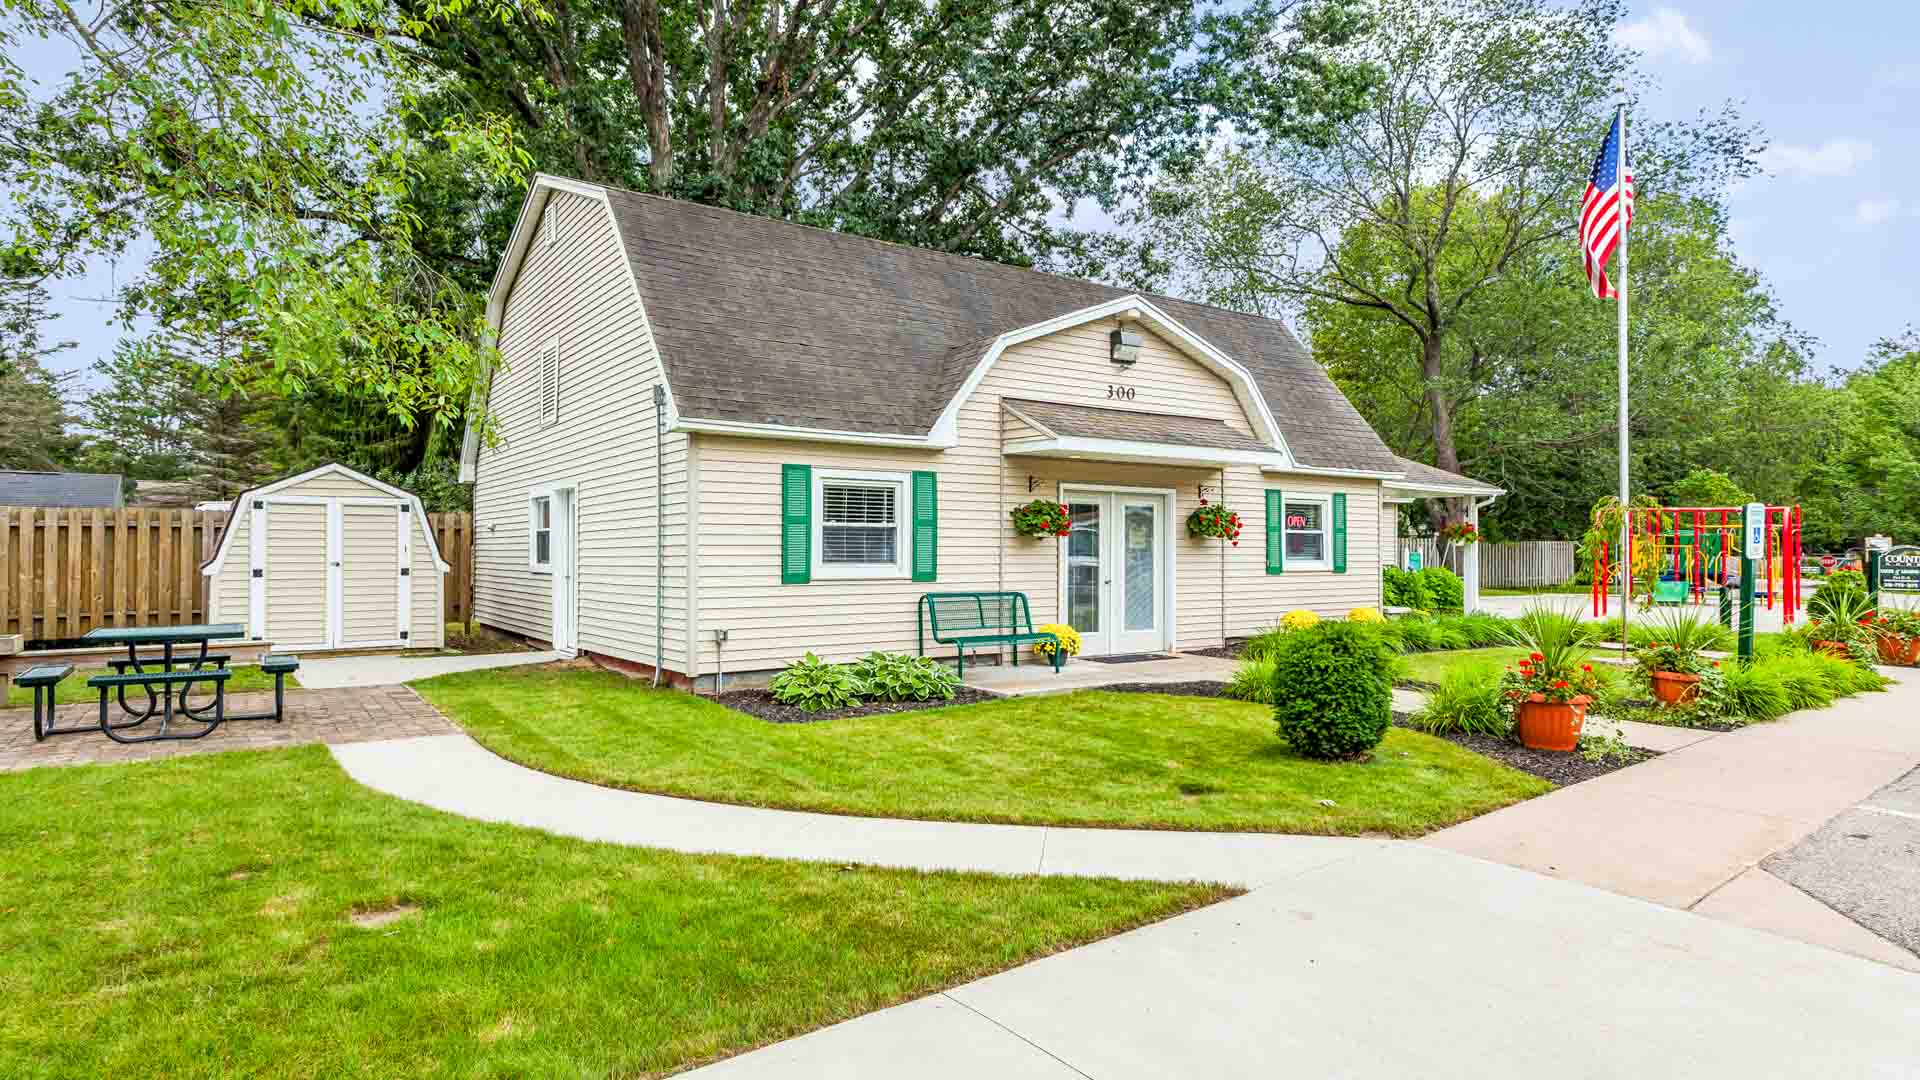 Country Acres Manufactured Homes Community Clubhouse in Cadillac, MI